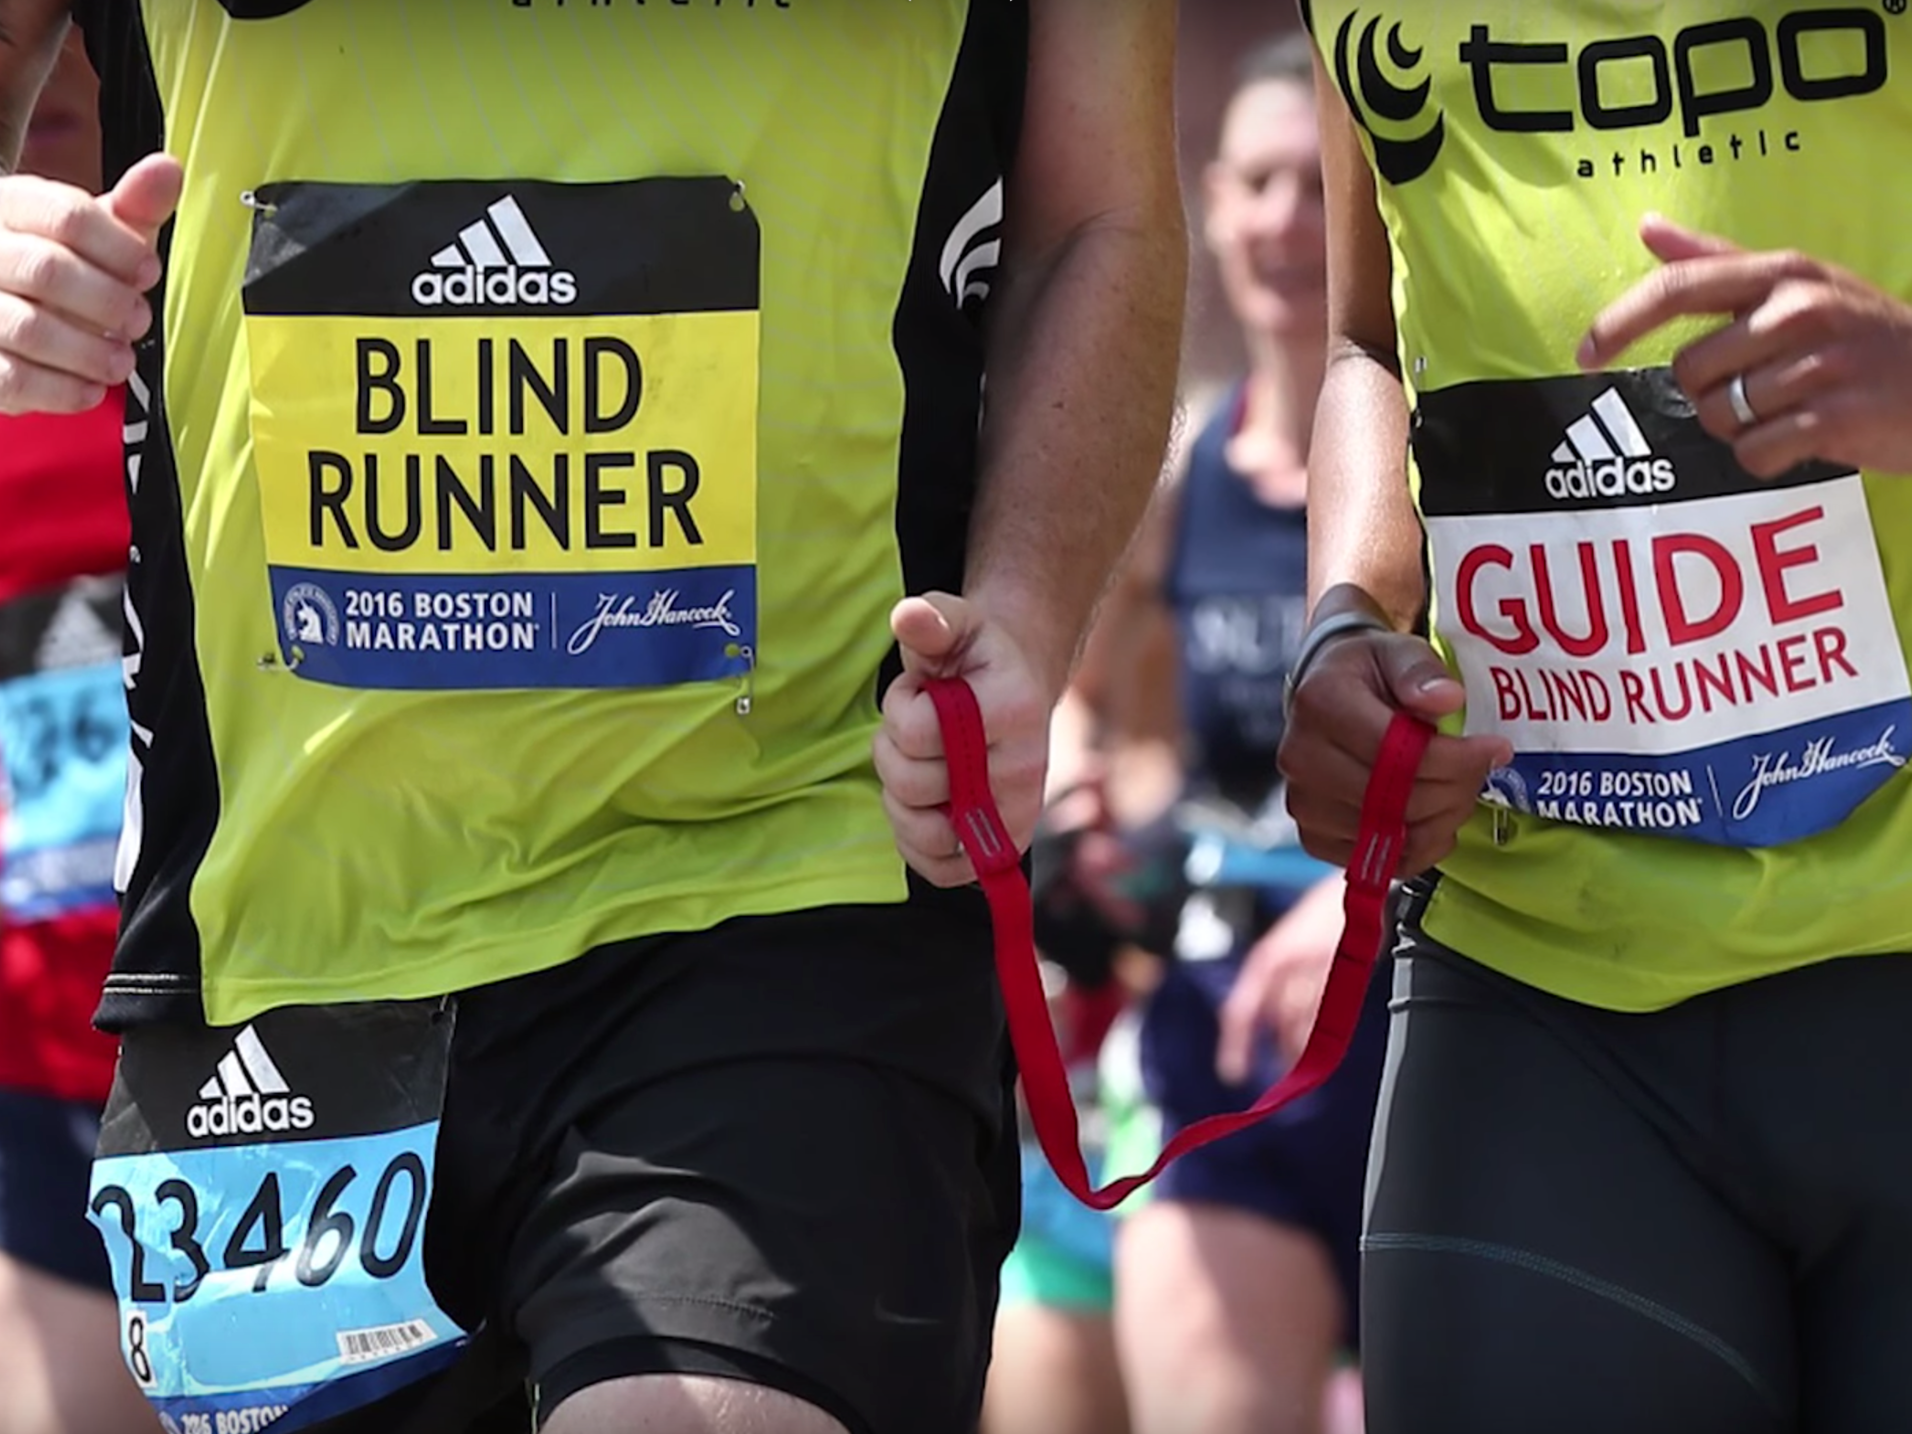 Born in Massachusetts and raised in Maine, Kyle was diagnosed with retinitis pigmentosa (RP), a degenerative eye disease that first affects your night vision and often leads to complete blindness, at age 11 and was declared legally blind at 19 - Right: Kyle finishing the 2016 Boston Marathon